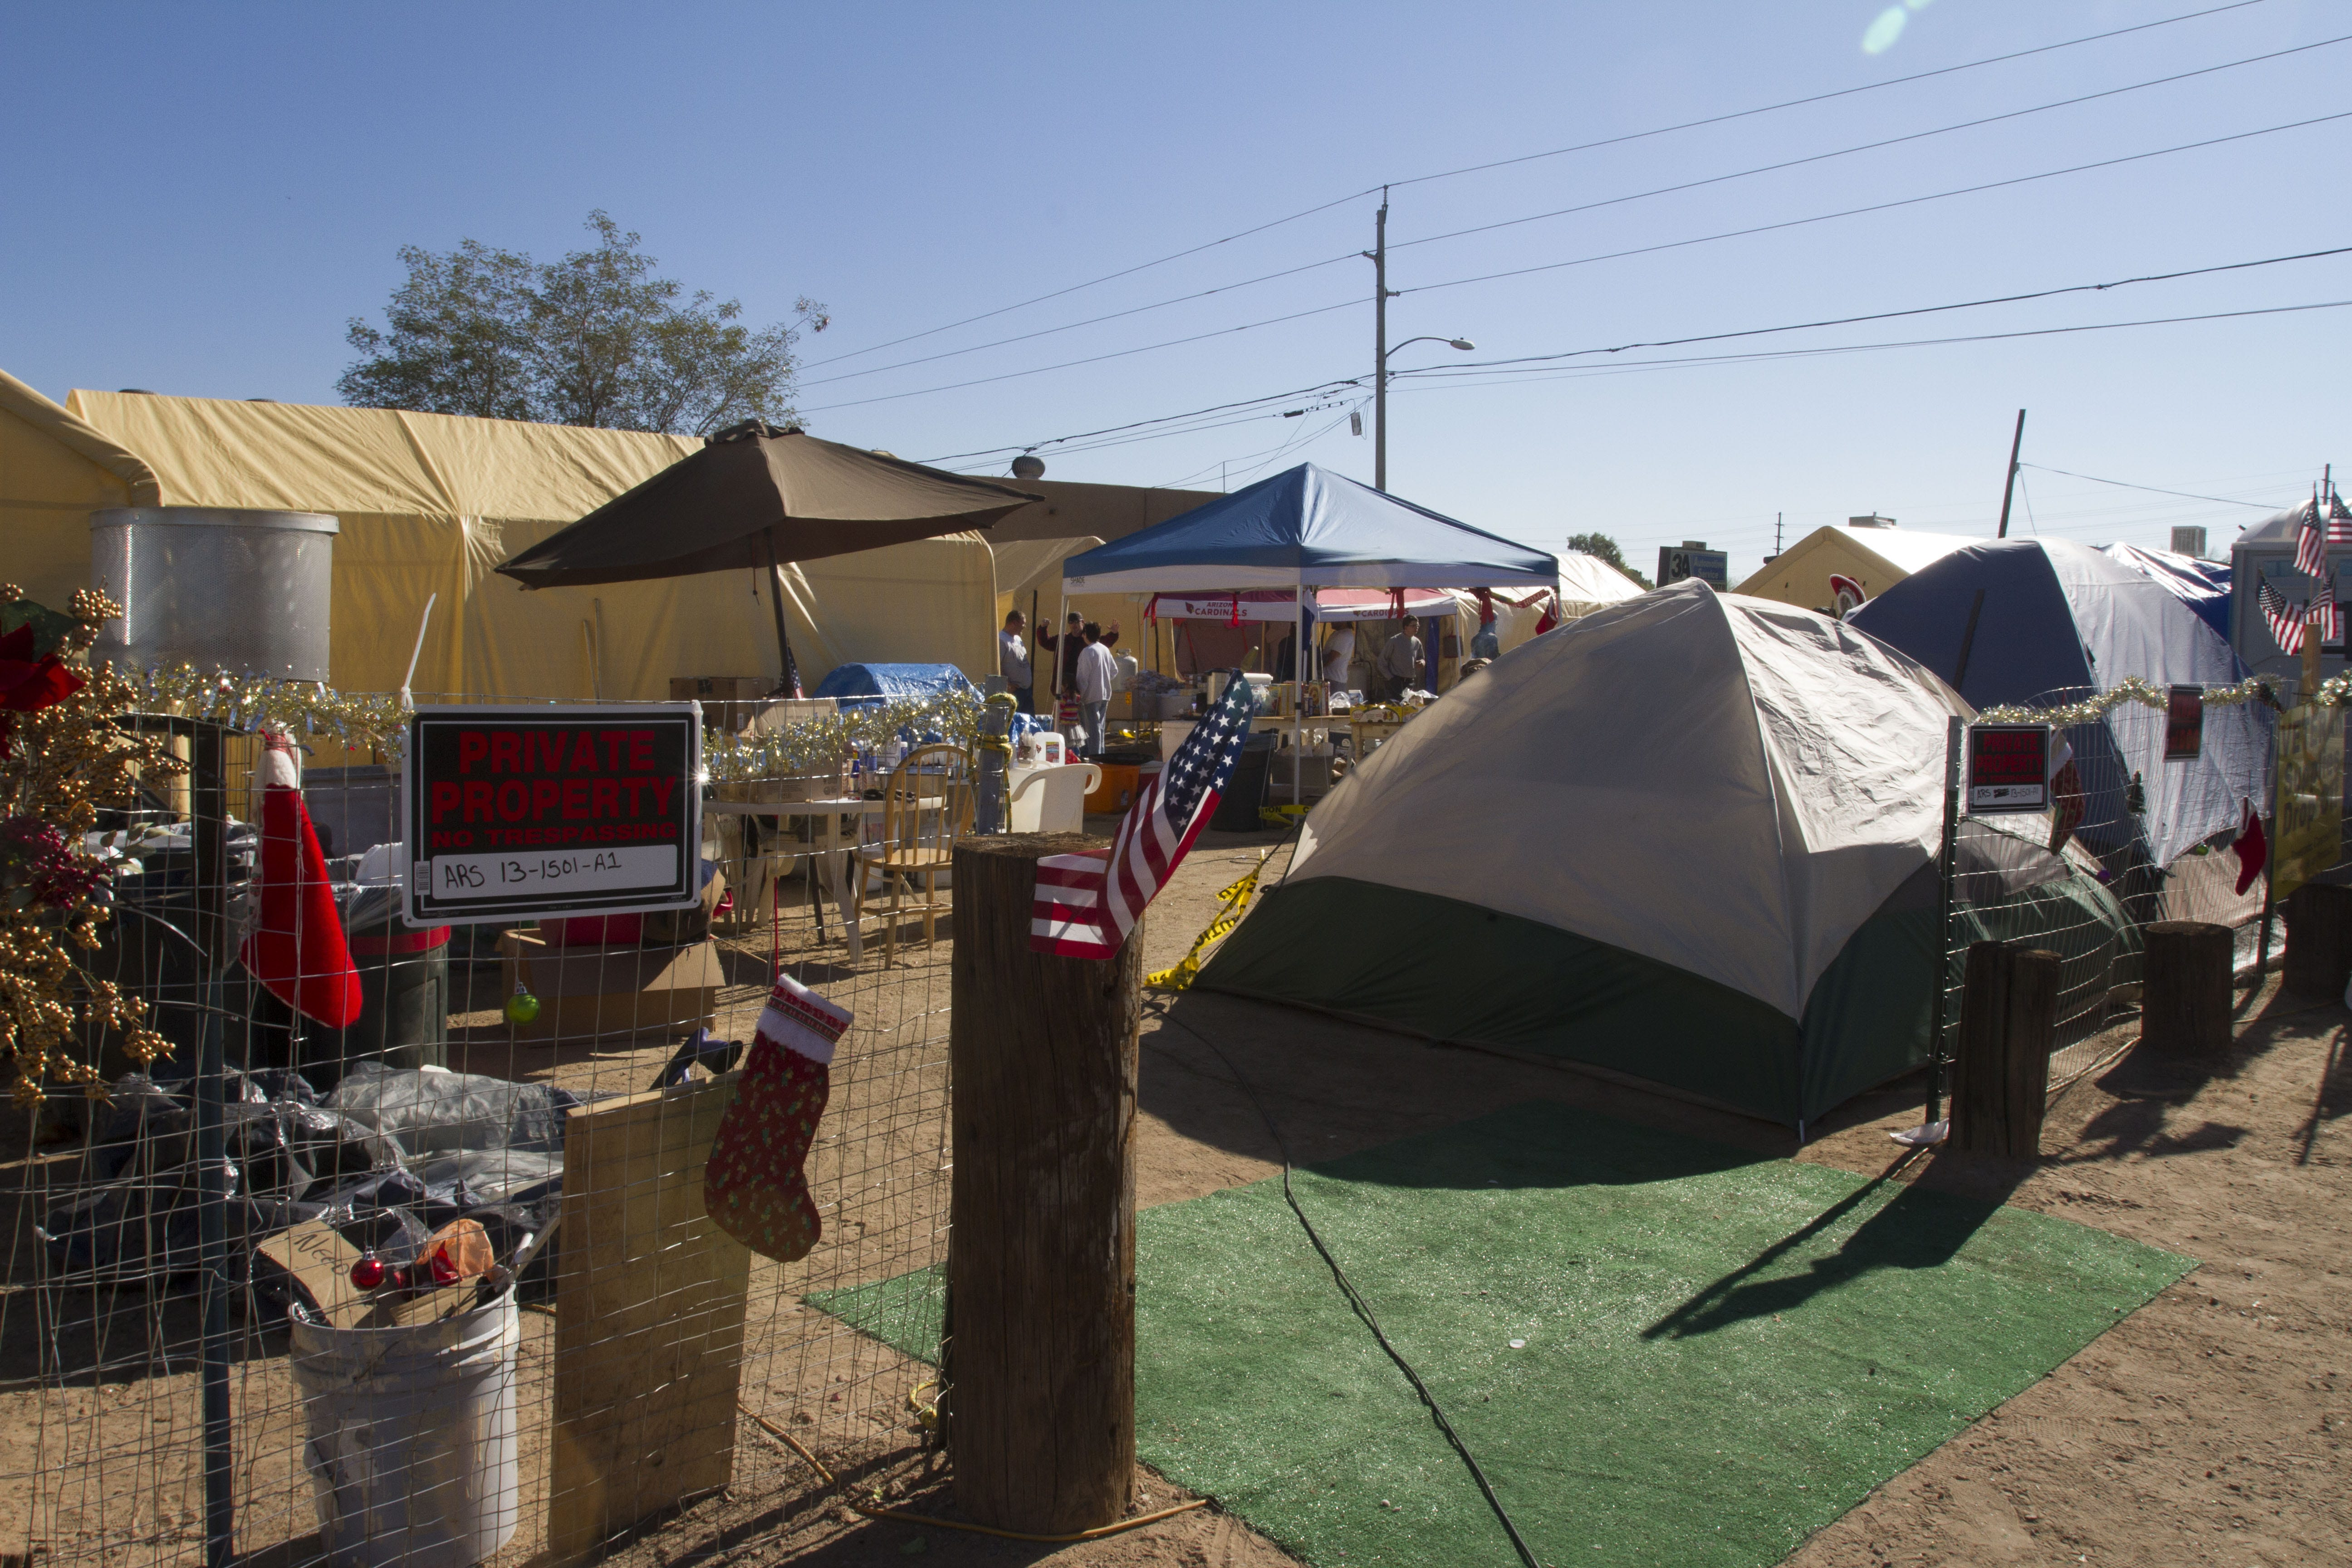 635860514259693546-c&alpha-121715-01.JPG & Troubled times at Camp Alpha: Is unofficial homeless shelter ...